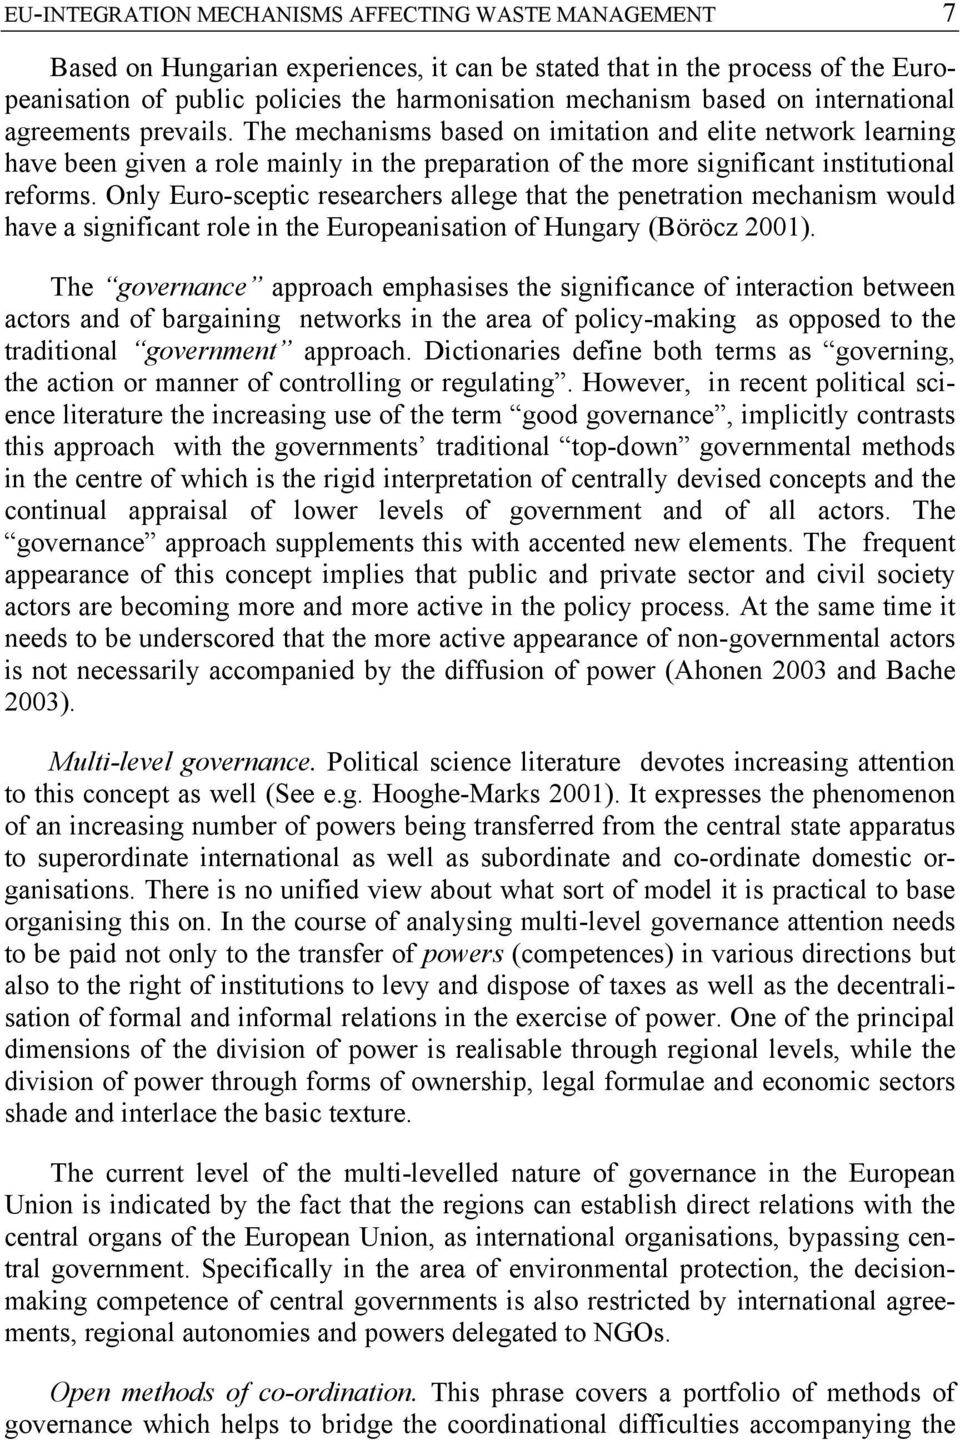 Only Euro-sceptic researchers allege that the penetration mechanism would have a significant role in the Europeanisation of Hungary (Böröcz 2001).